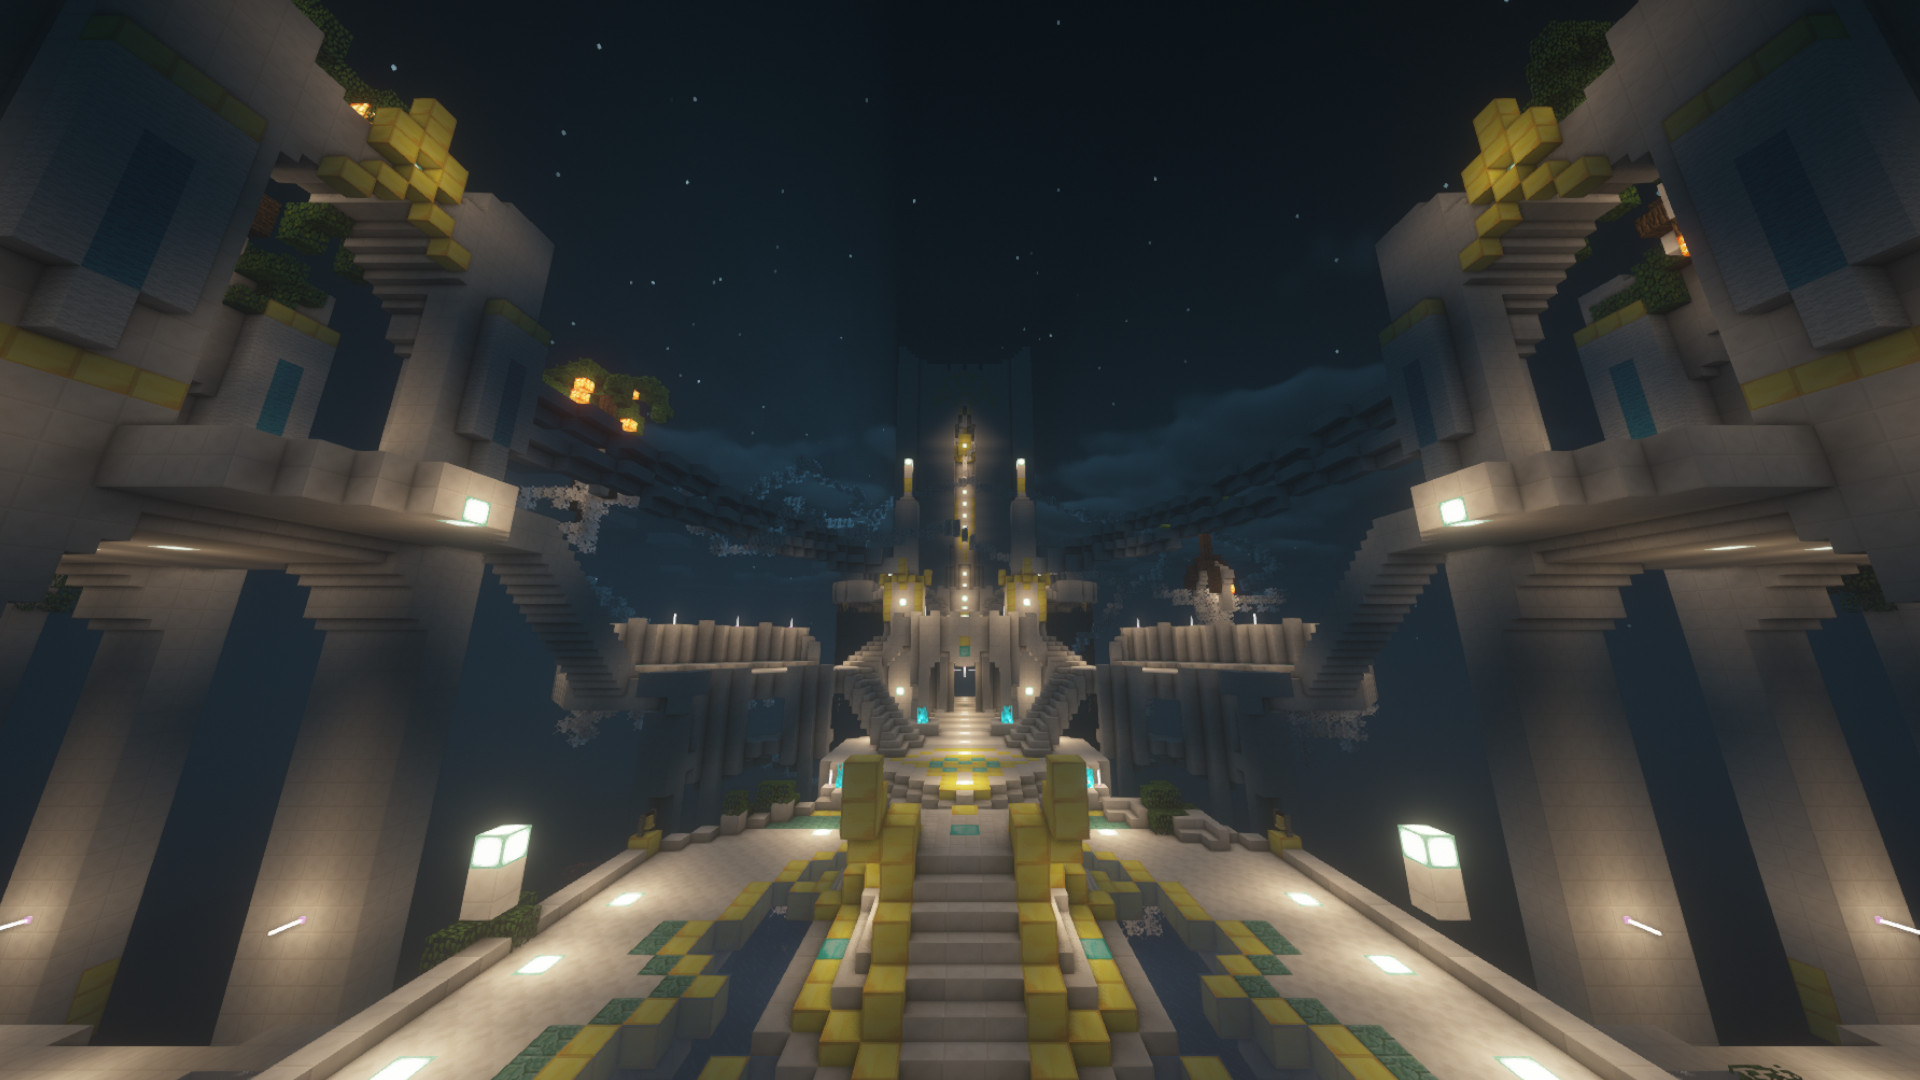 Minecraft player builds World of Warcraft's Elysian Hold